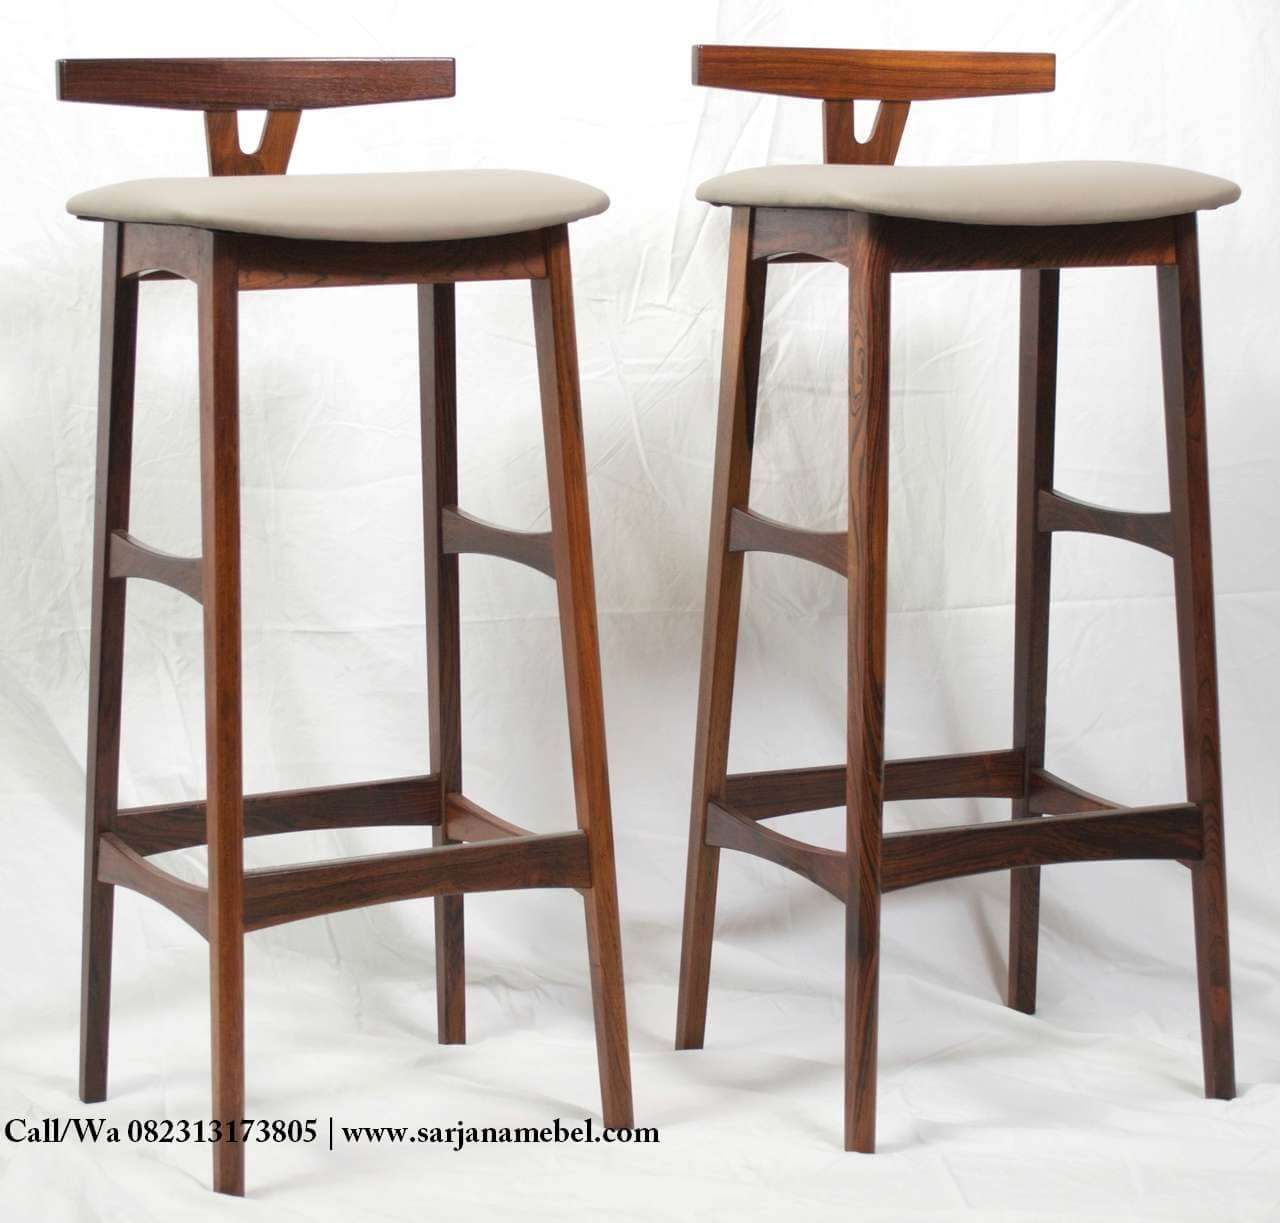 Kursi Bar Cafe Model Retro Vintage Terbaru | SARJANA MEBEL